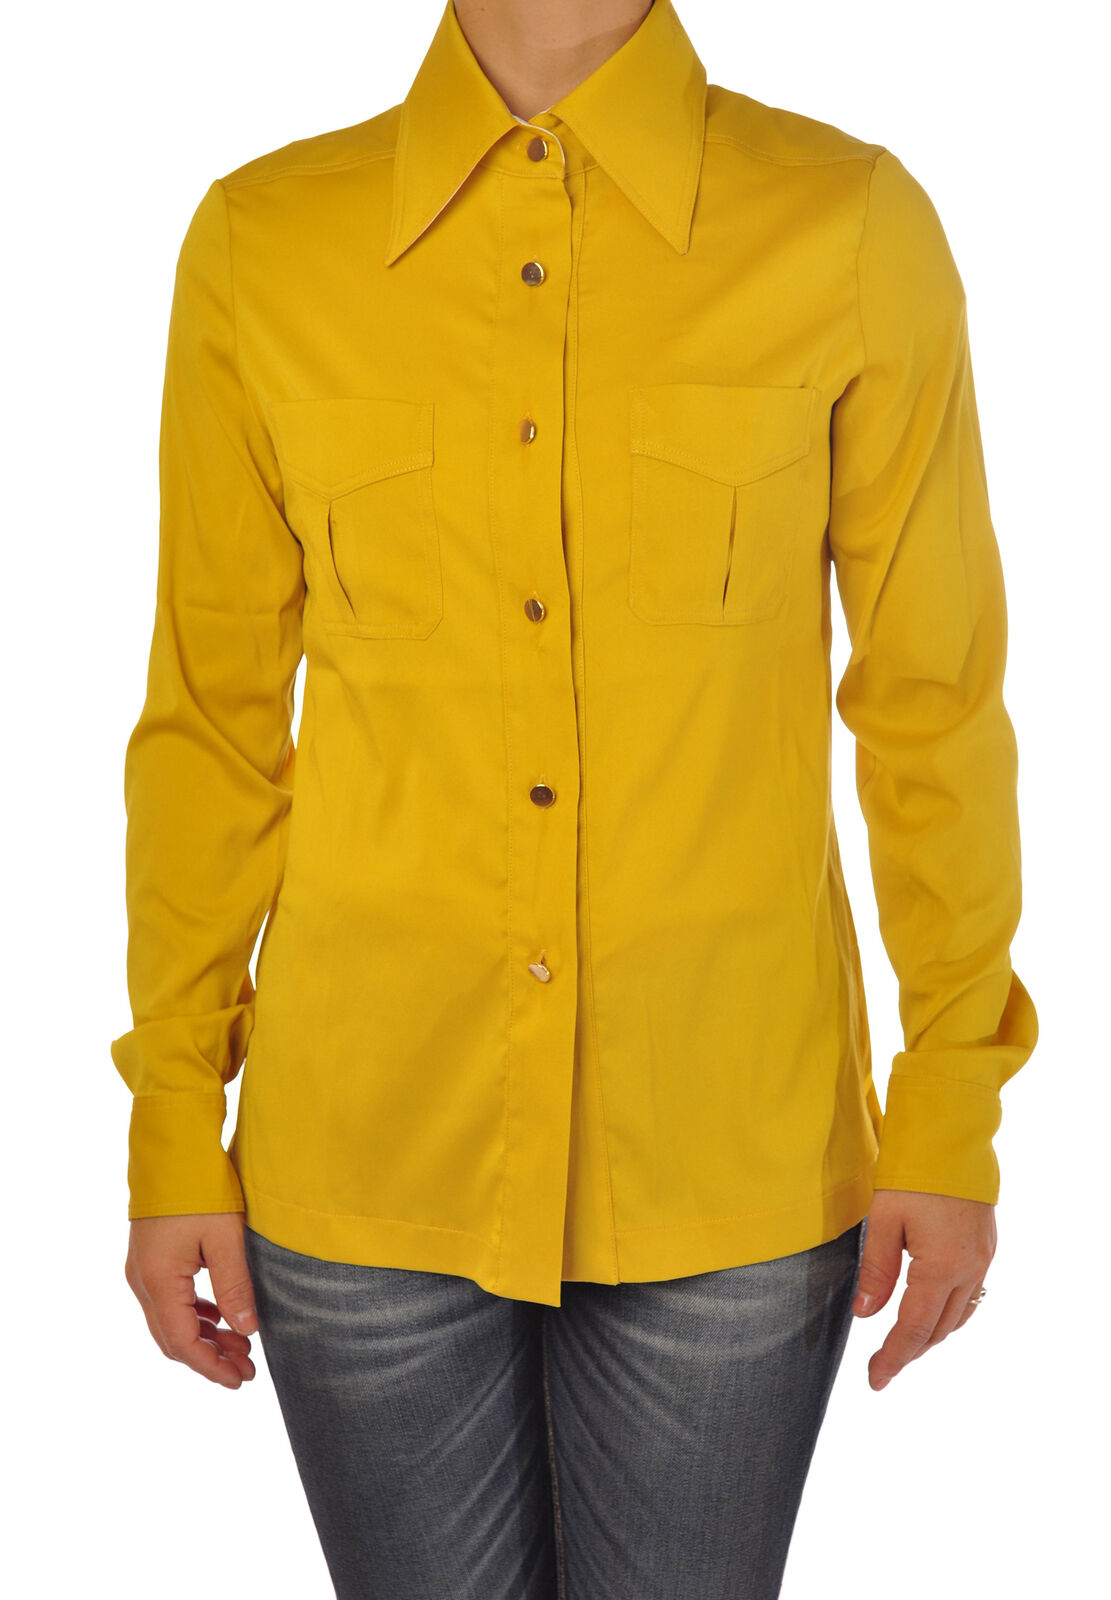 5 Preview  -  T - Female - Yellow - 2757029N173724